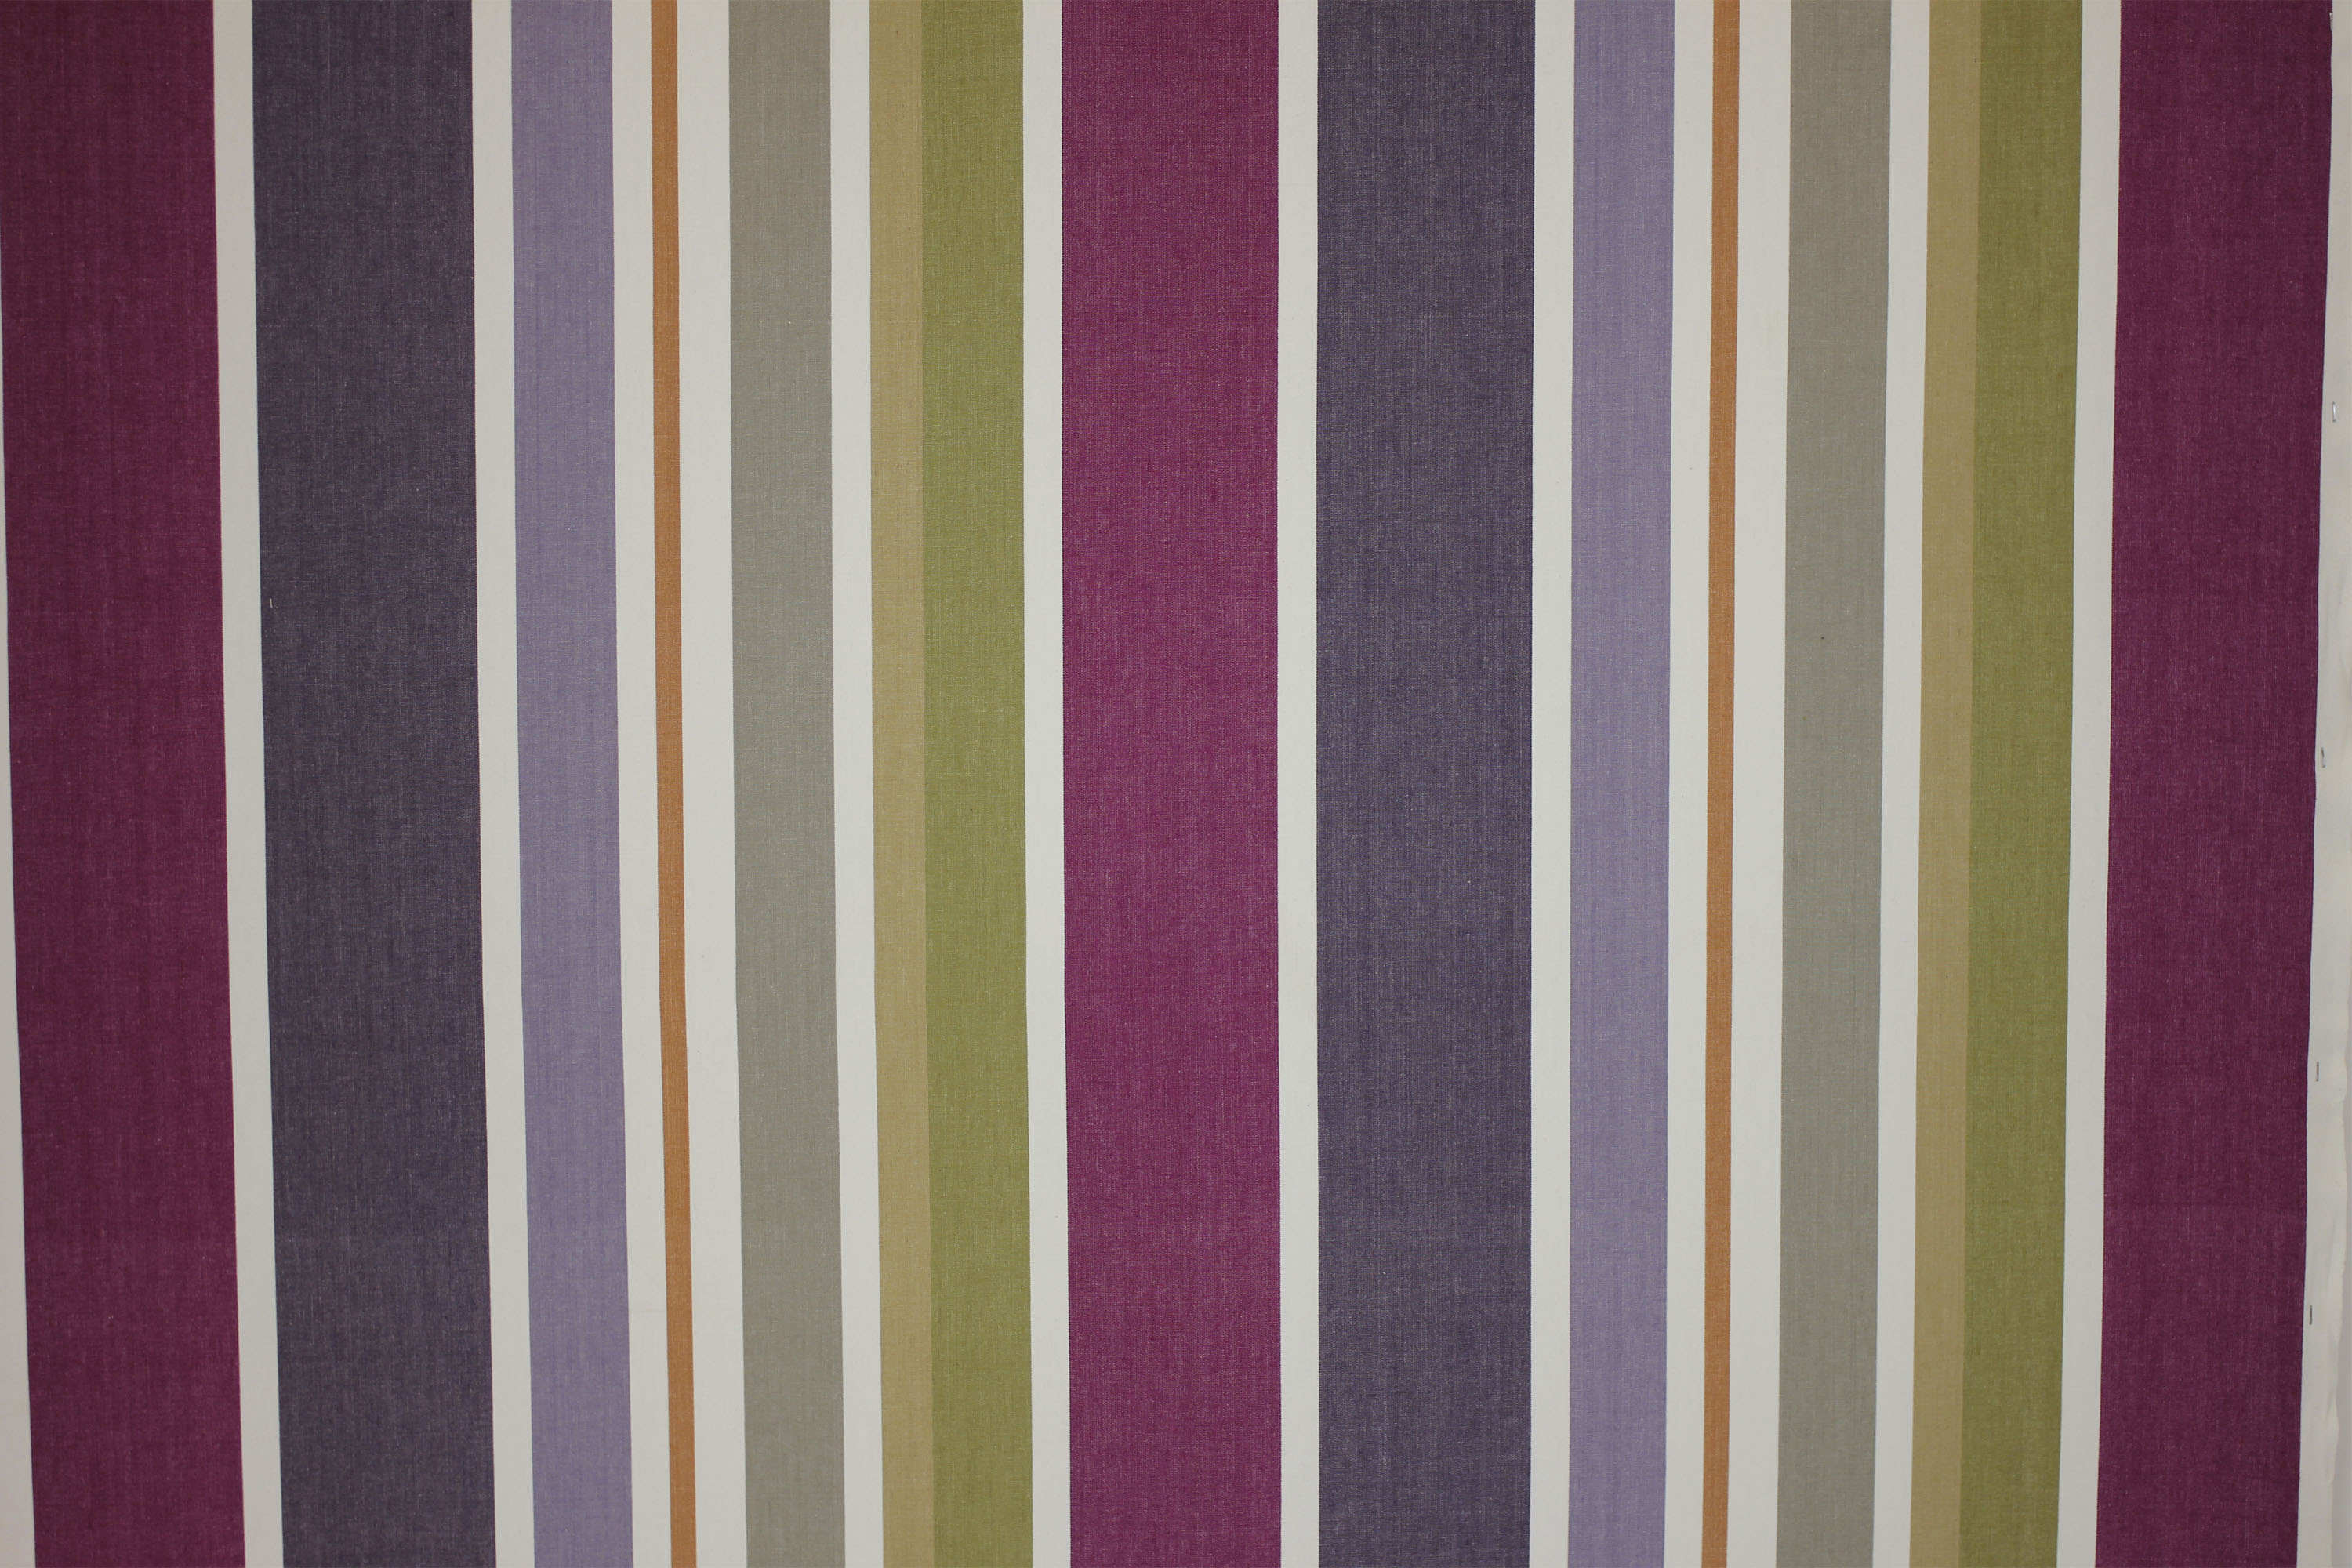 Marbles Purple Striped Fabric